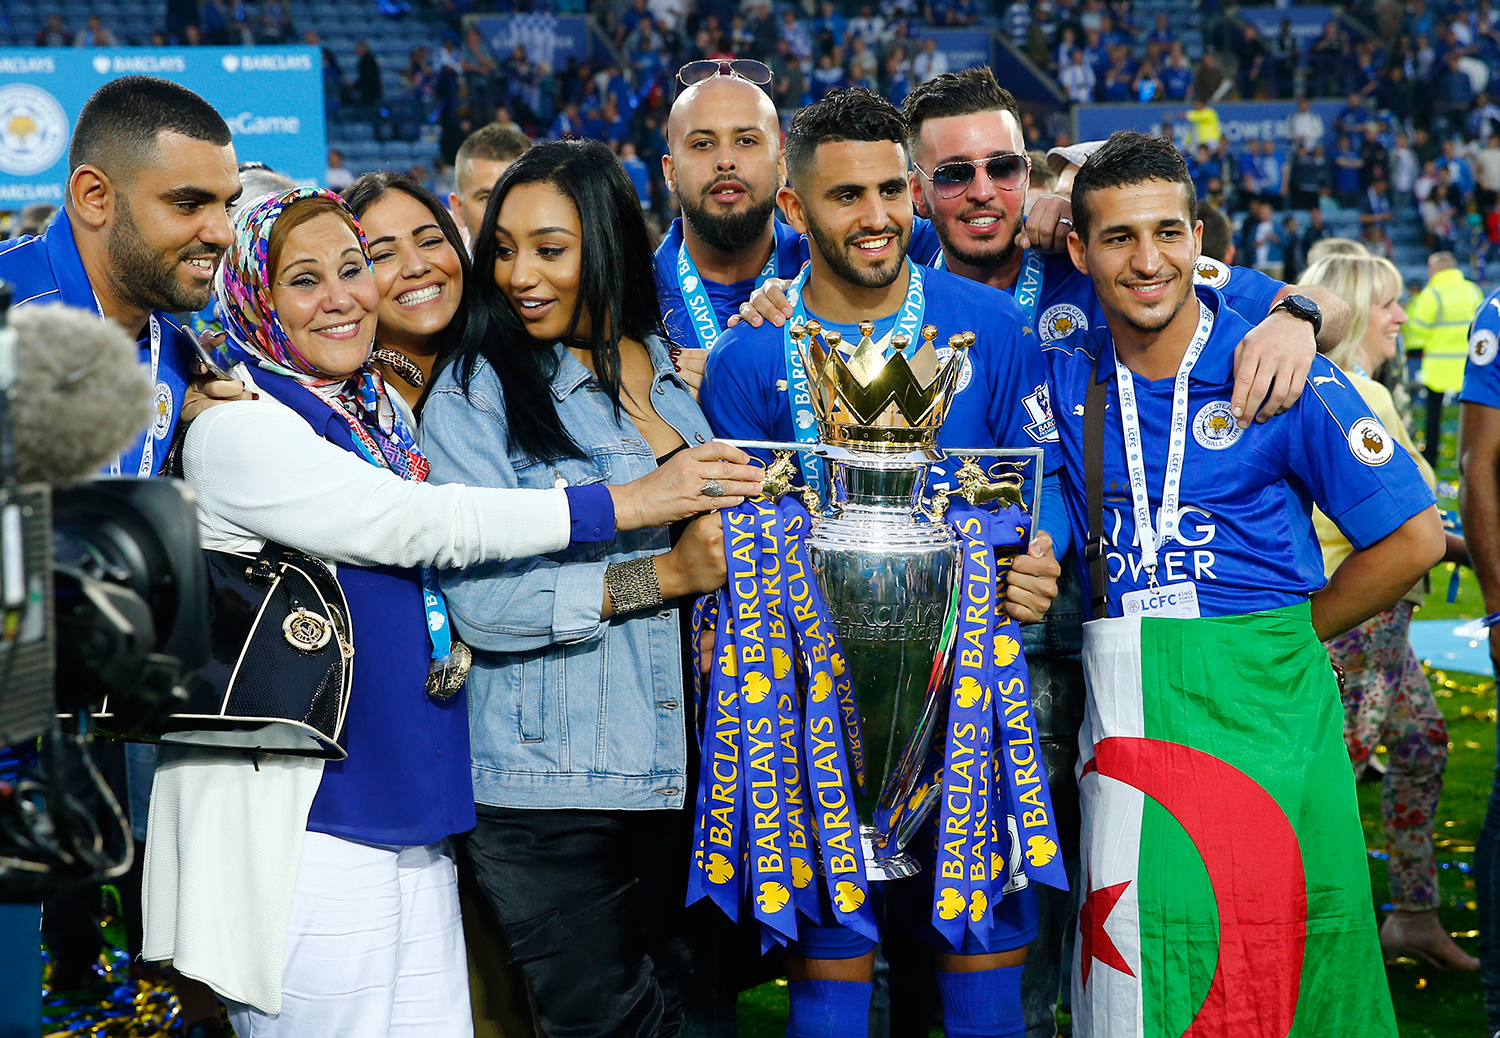 Leicester City's Riyad Mahrez holds the trophy as he celebrates winning the premier league with his family. — Reuters